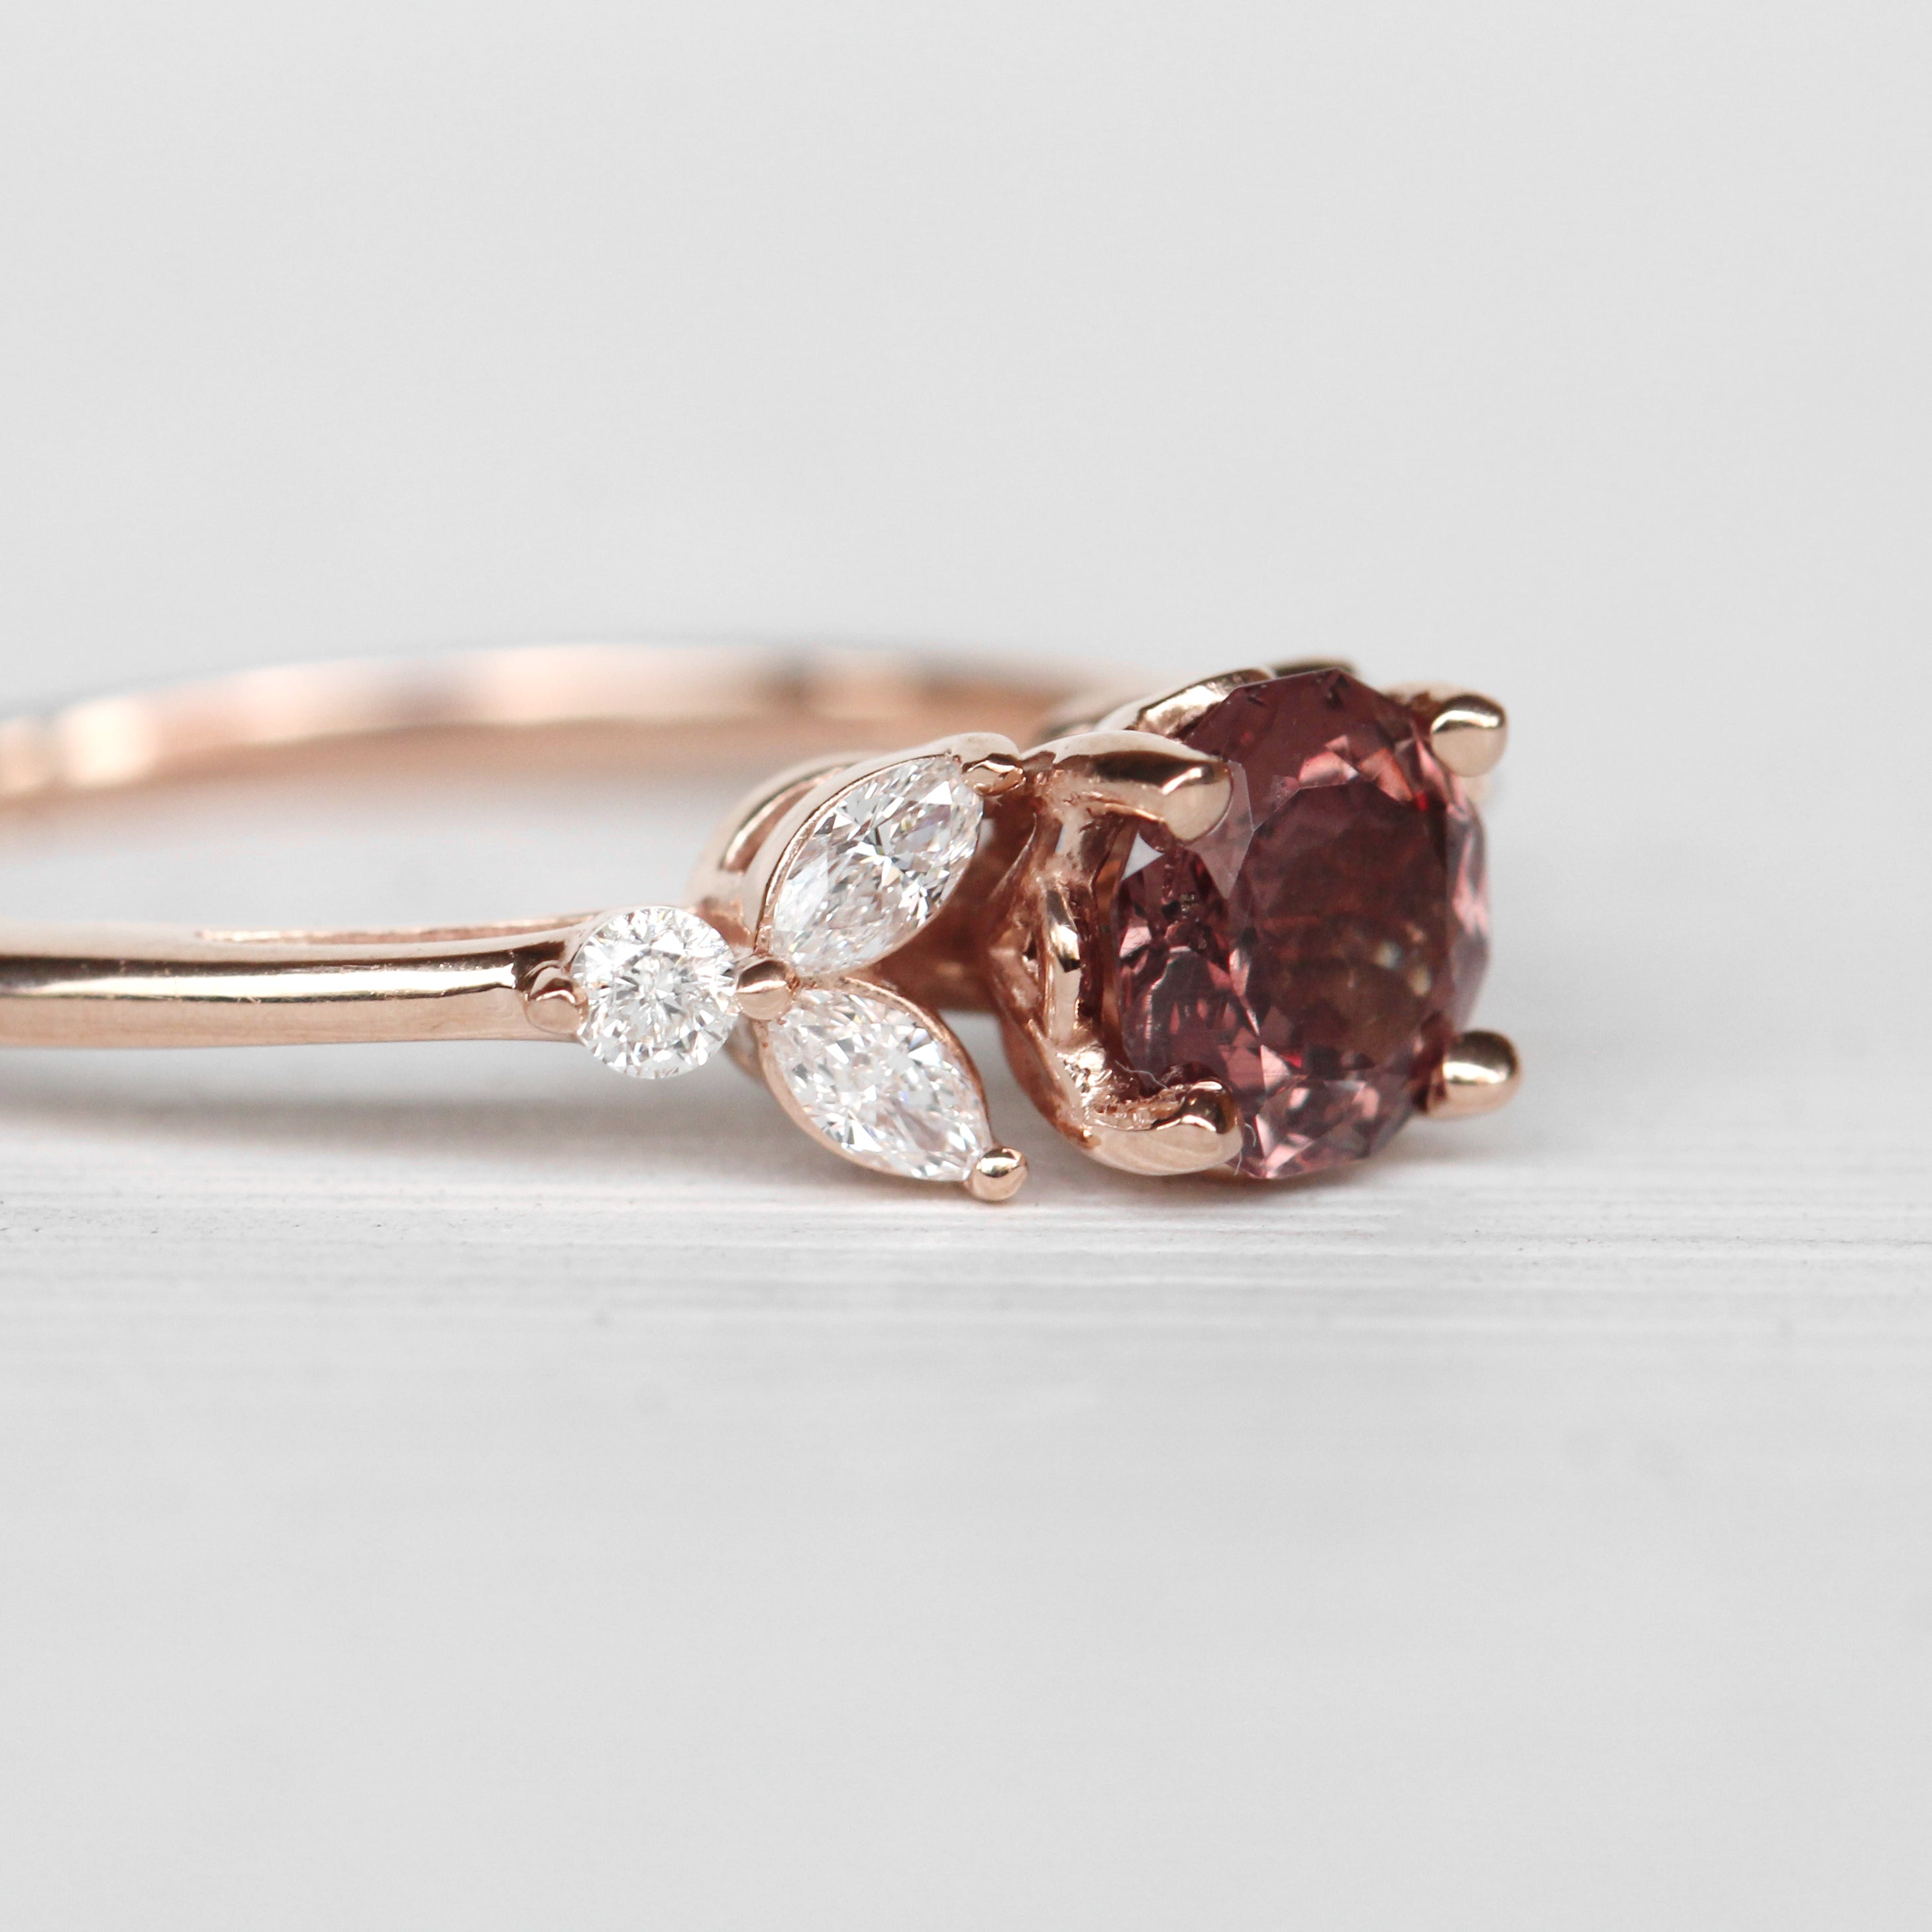 Andia Ring with a color change Garnet in 10k Rose Gold - Ready to Size and Ship